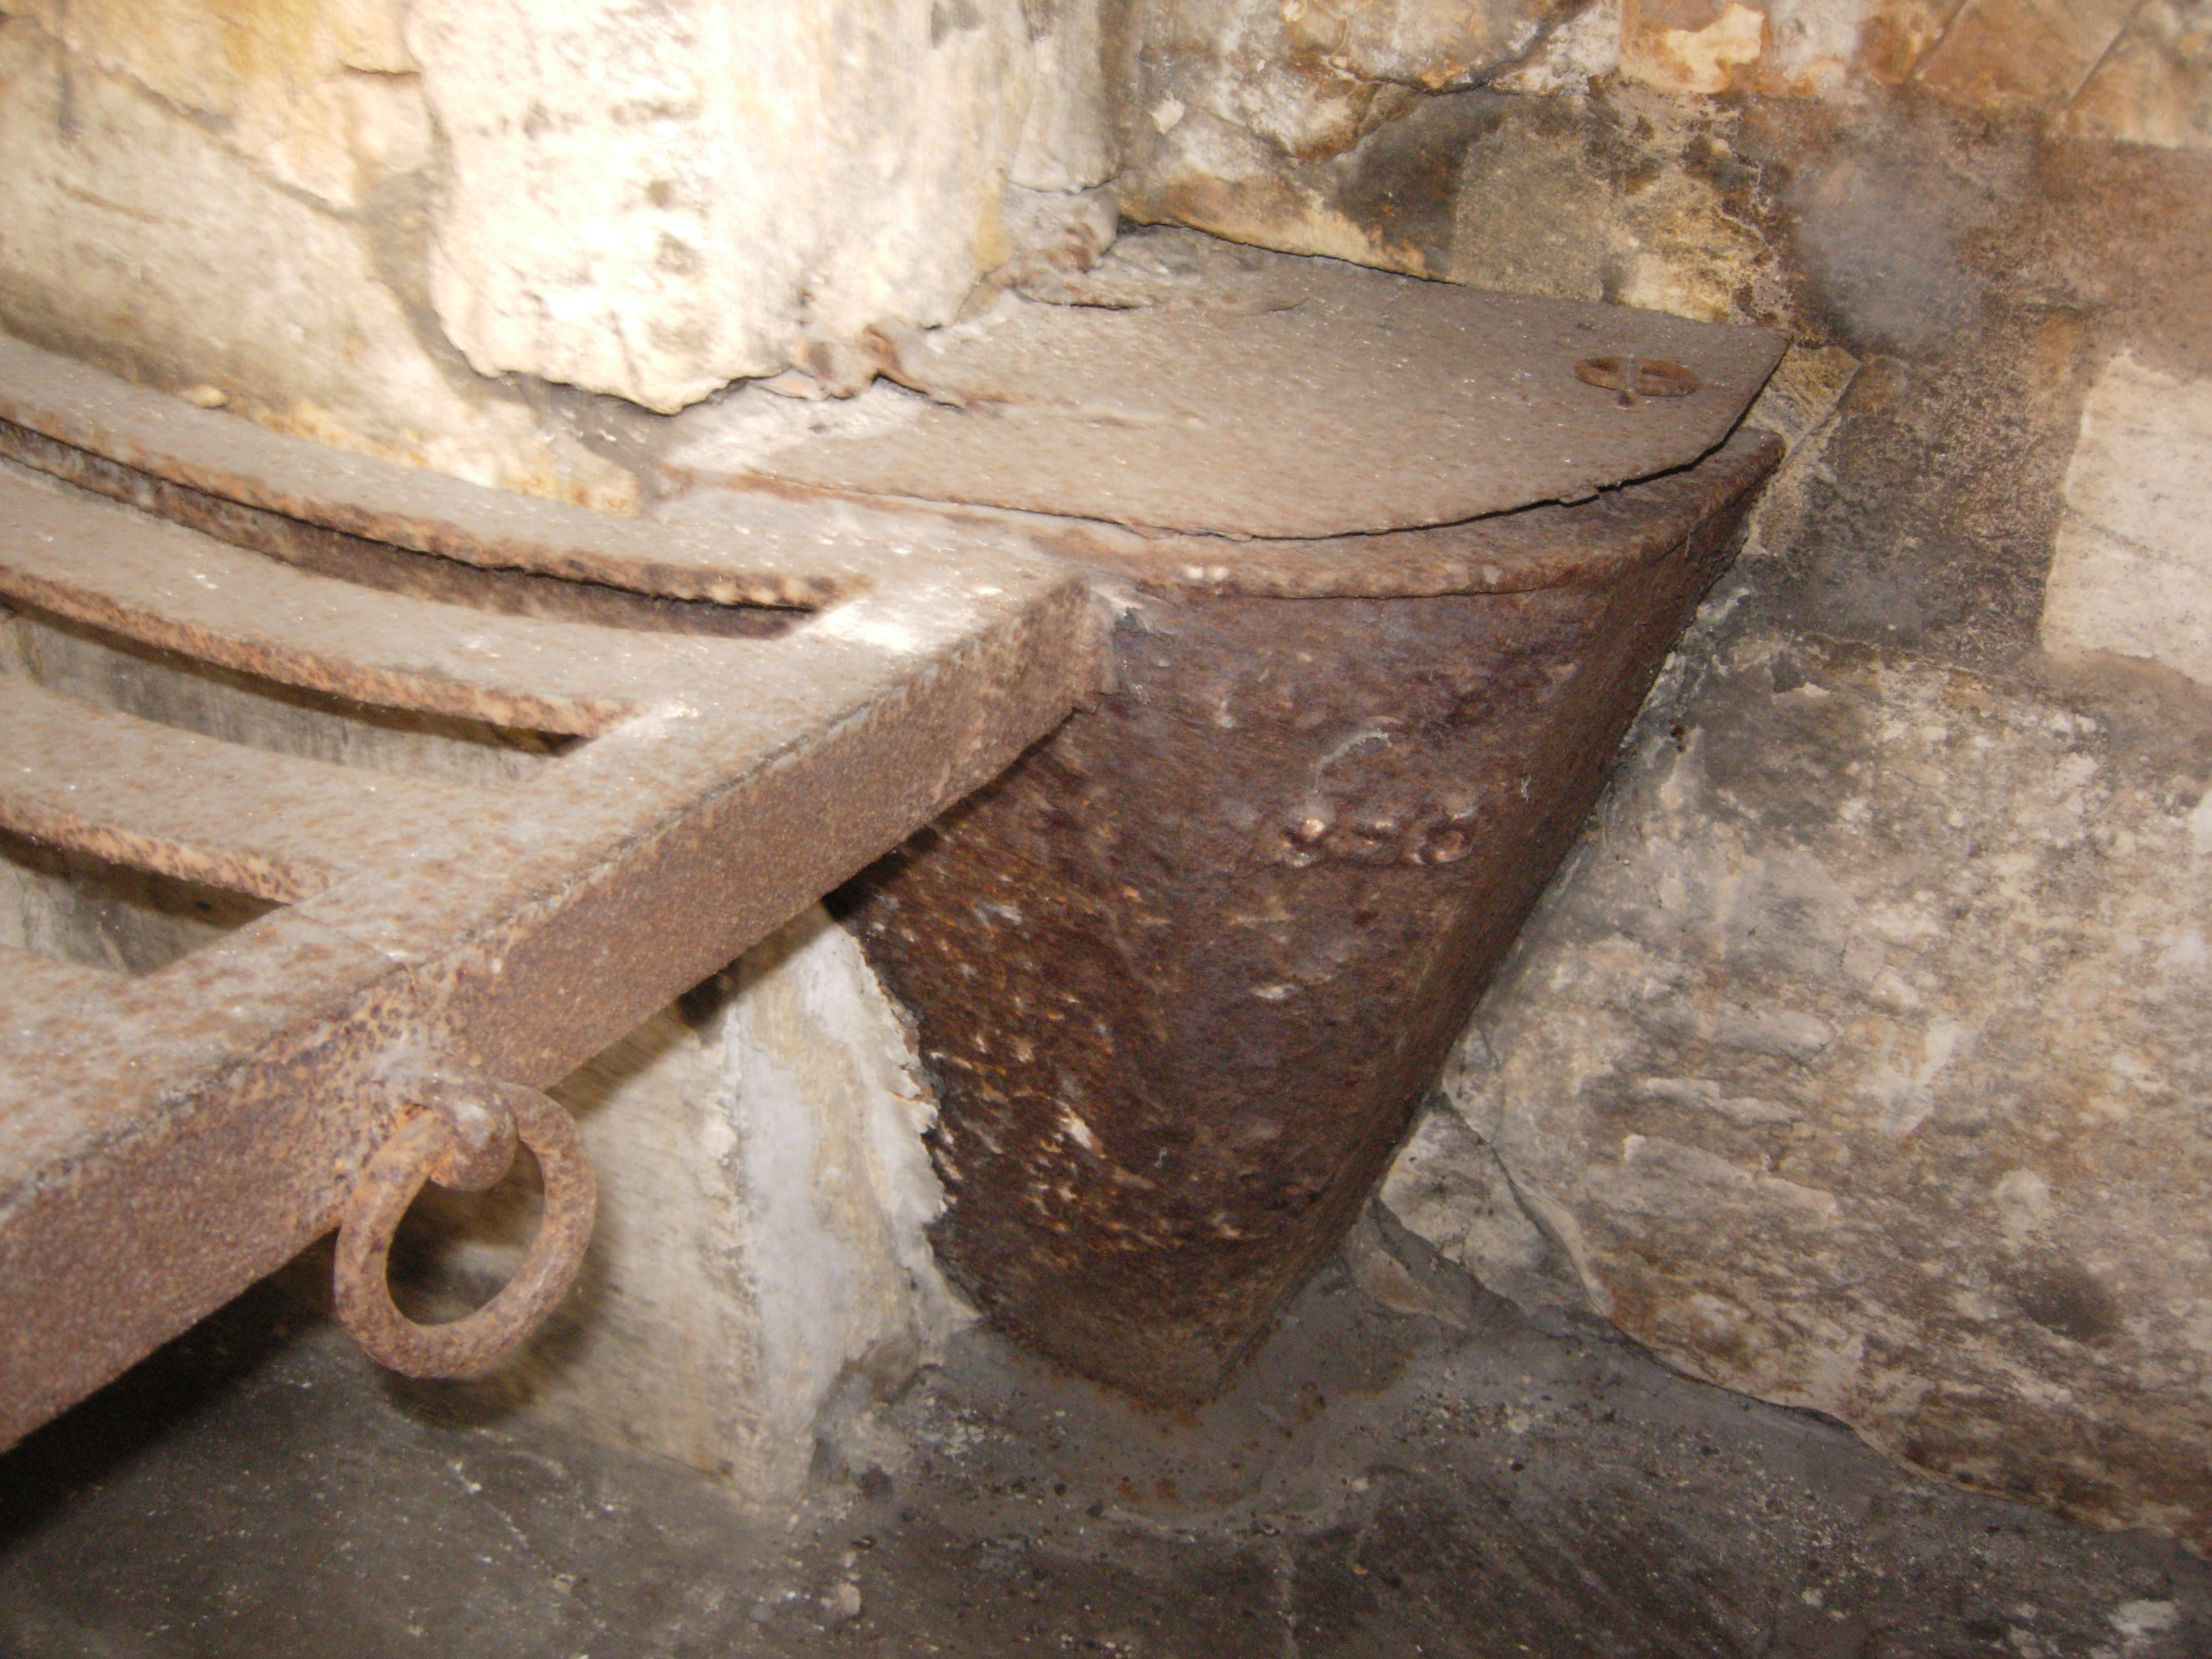 Lock-up interior, showing the toilet (or hopper) located at the end of the bed frame. The hopper was connected to a chute which deposited waste into the river.